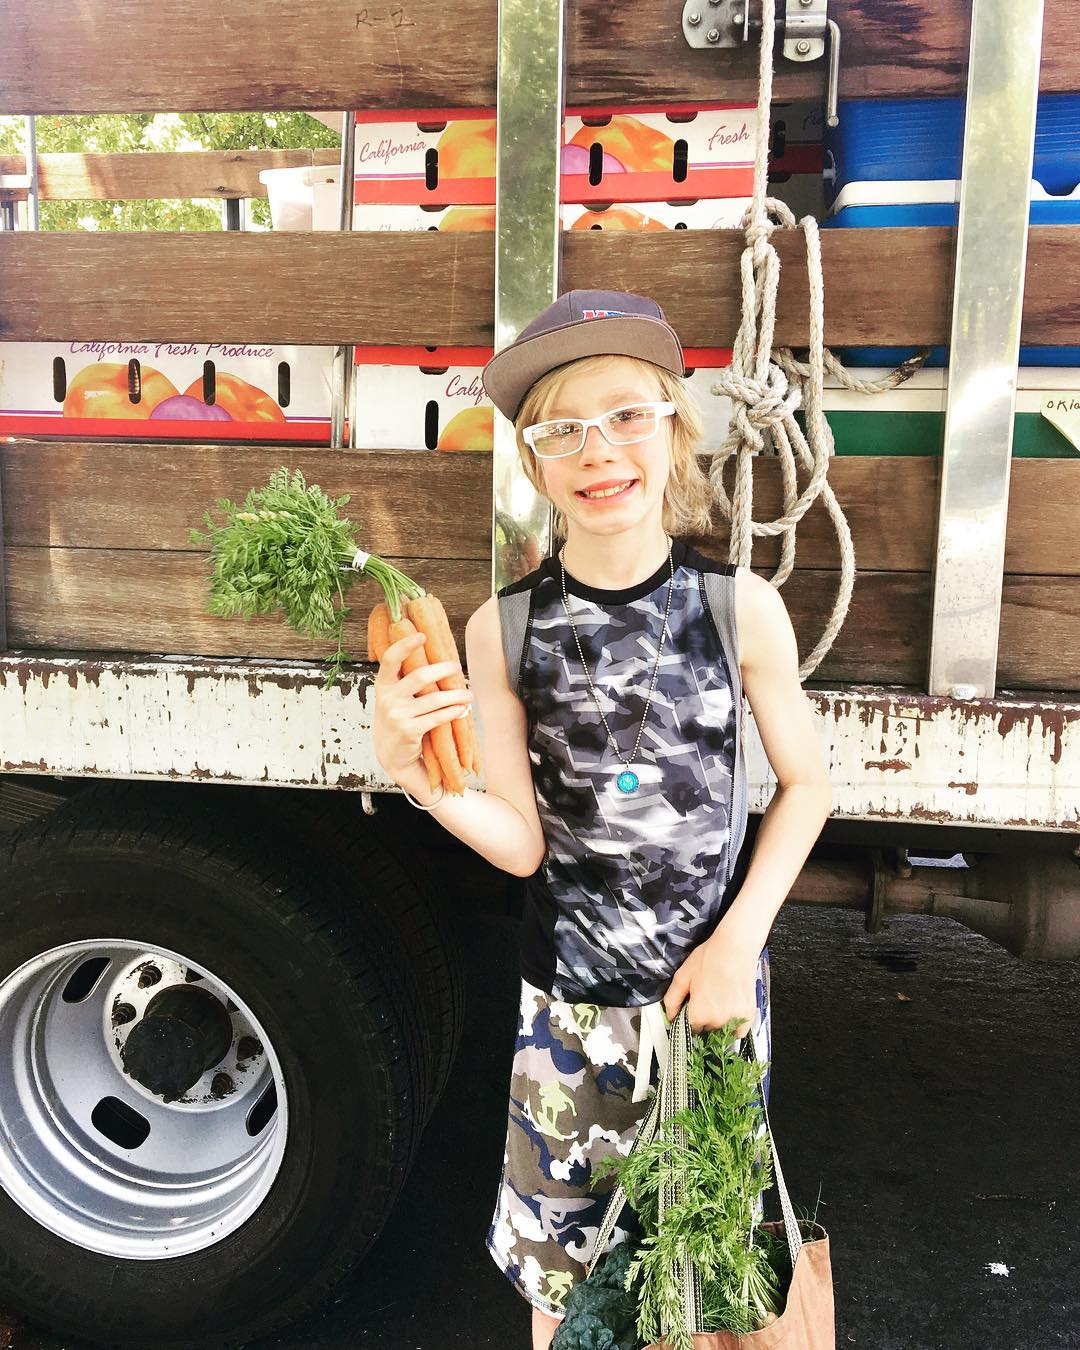 Local Farms - Purchase your produce from your local farmer's market to cut down on CO2 from transportation trucks used to deliver the goods, plus you'll be supporting your local farmers and economy. Thanks AIM Farmers Markets #farmersmarket #shoplocal #produce #littlethings #howyoucanhelp #savetheplanet #marincounty #itstartswithyou #littleactsbigchange 🥕